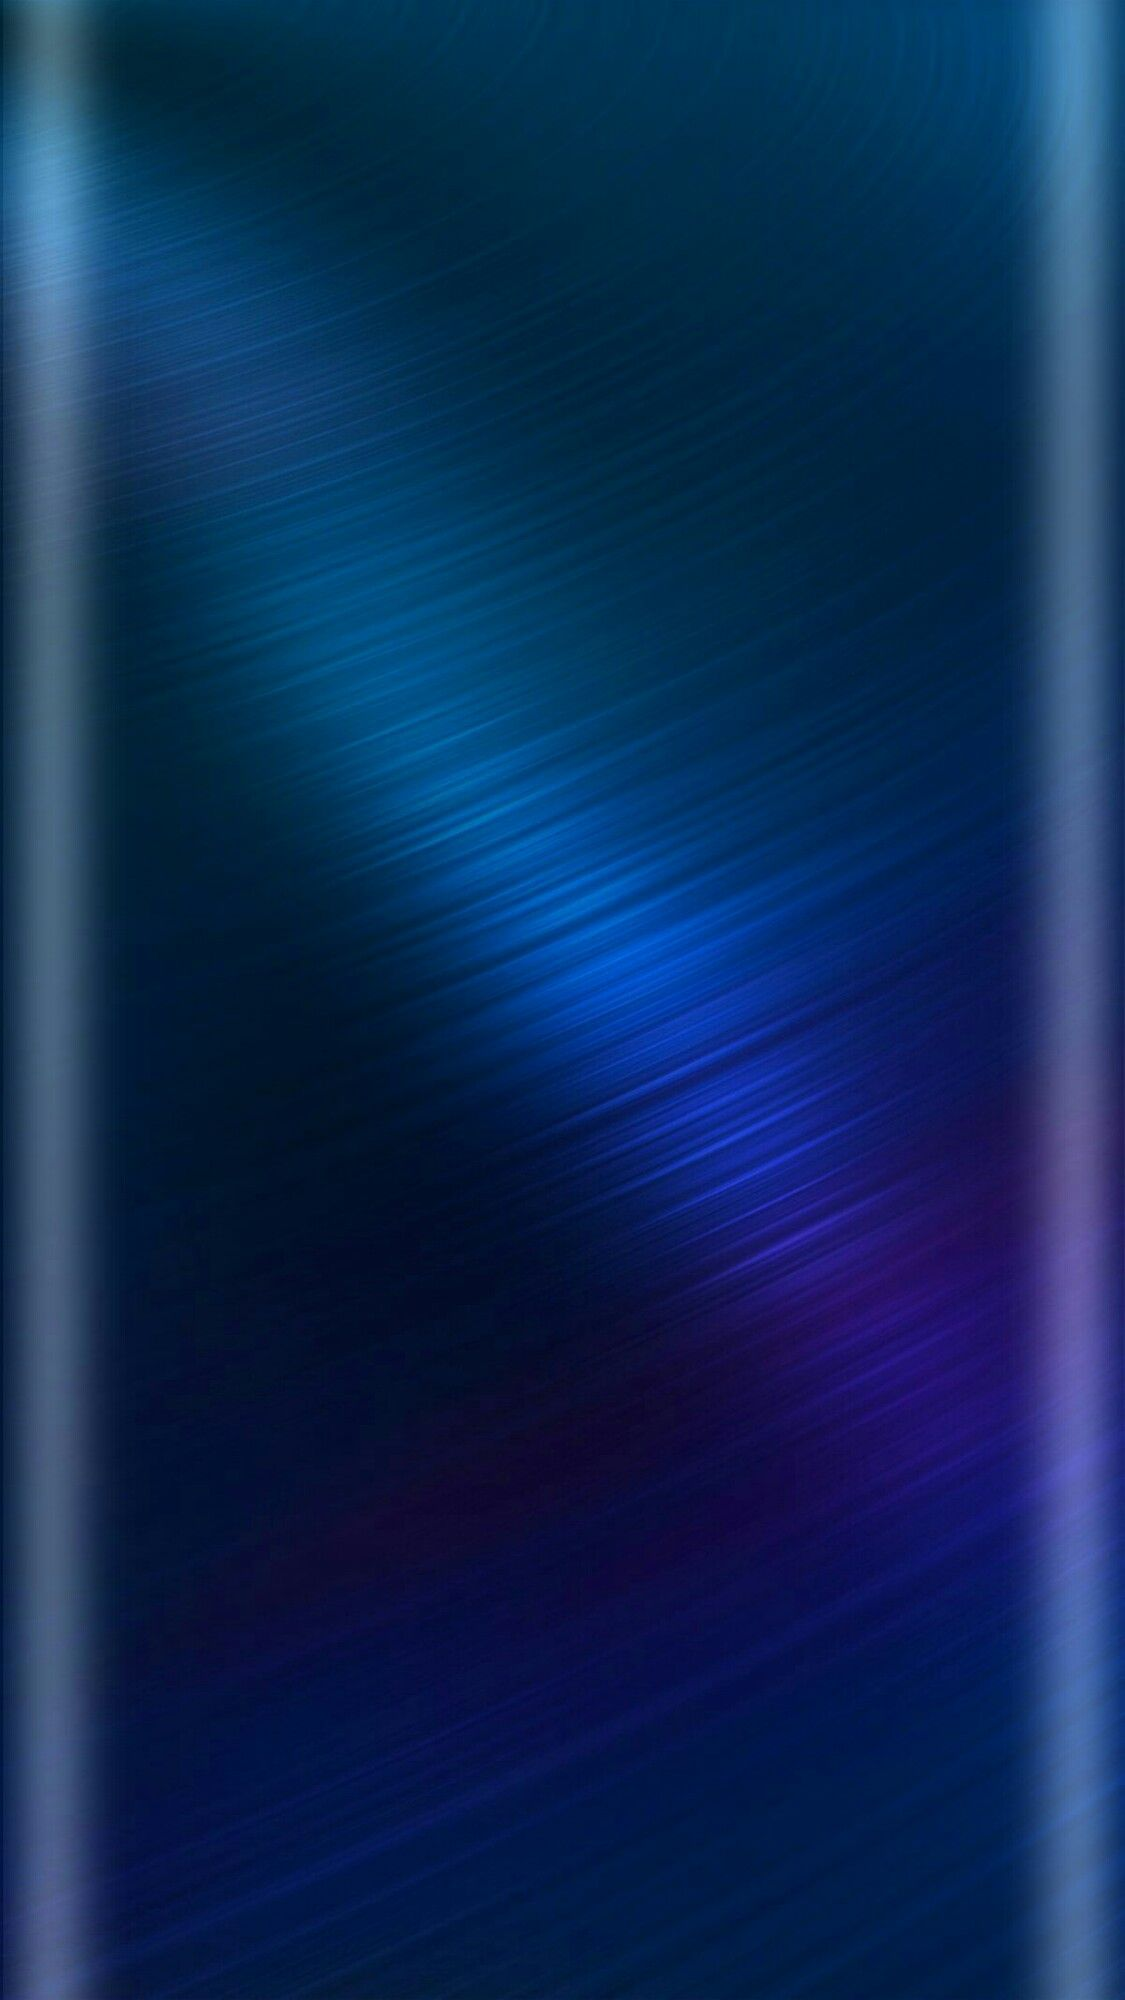 Cell Phone Wallpapers Wallpaper Backgrounds Samsung Galaxy S8 Patterns Blue Texture Background